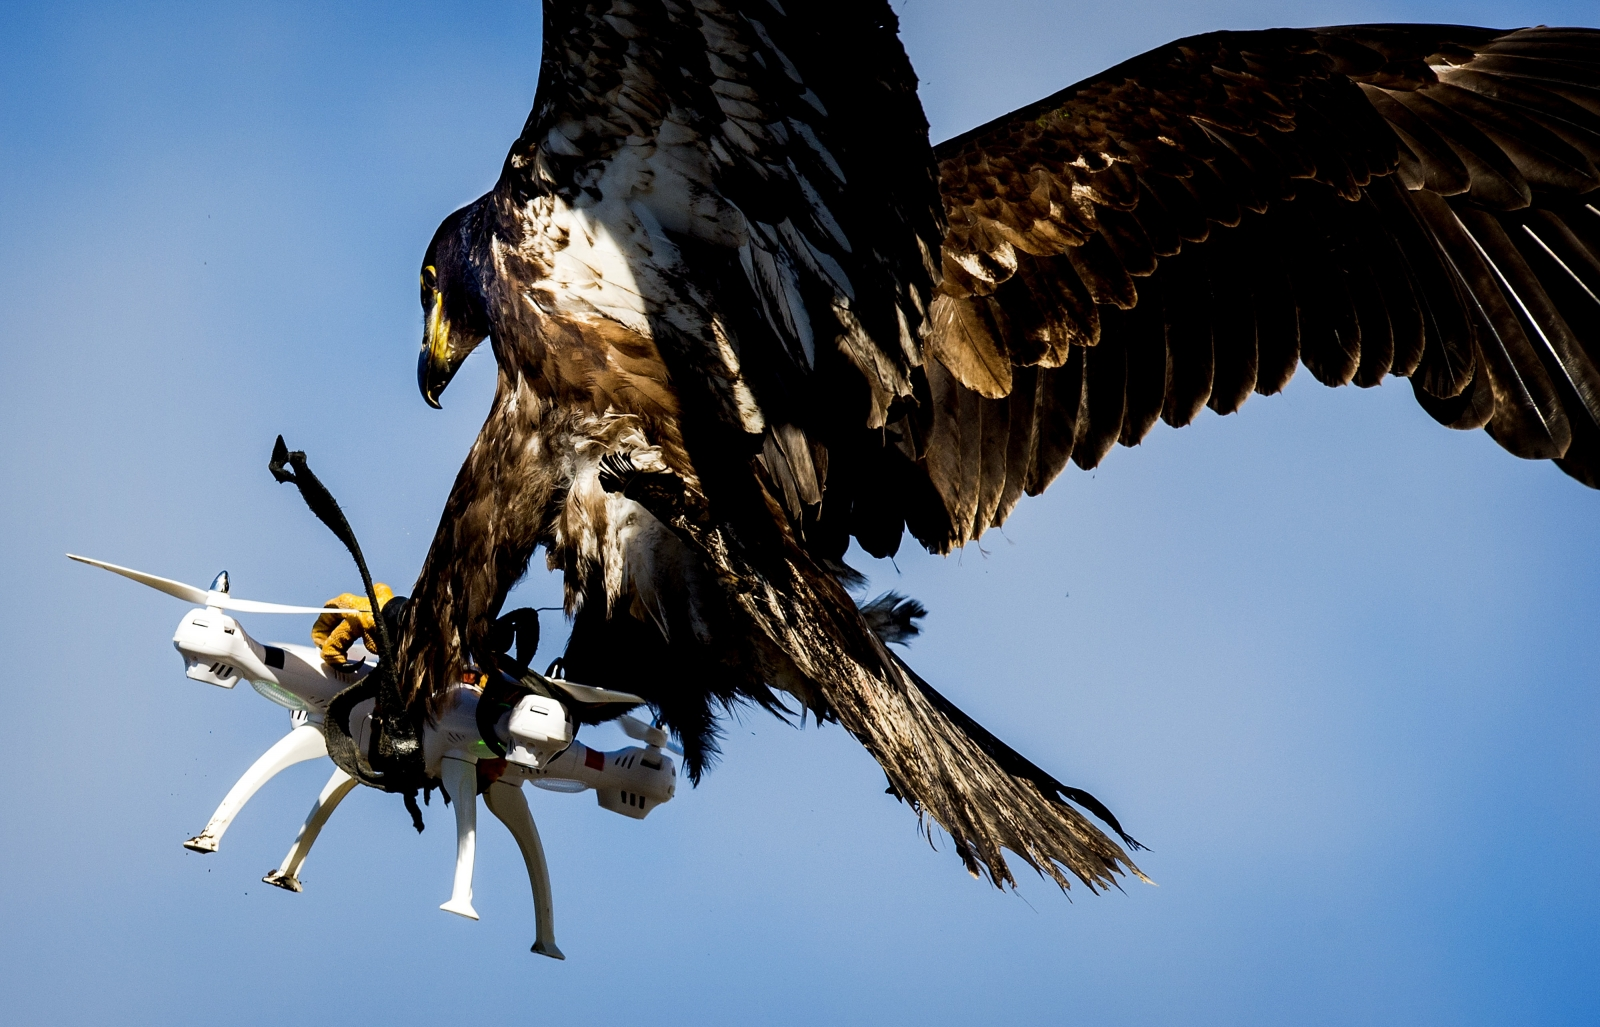 Dutch Police Are Training Eagles To Take Out Rogue Drones